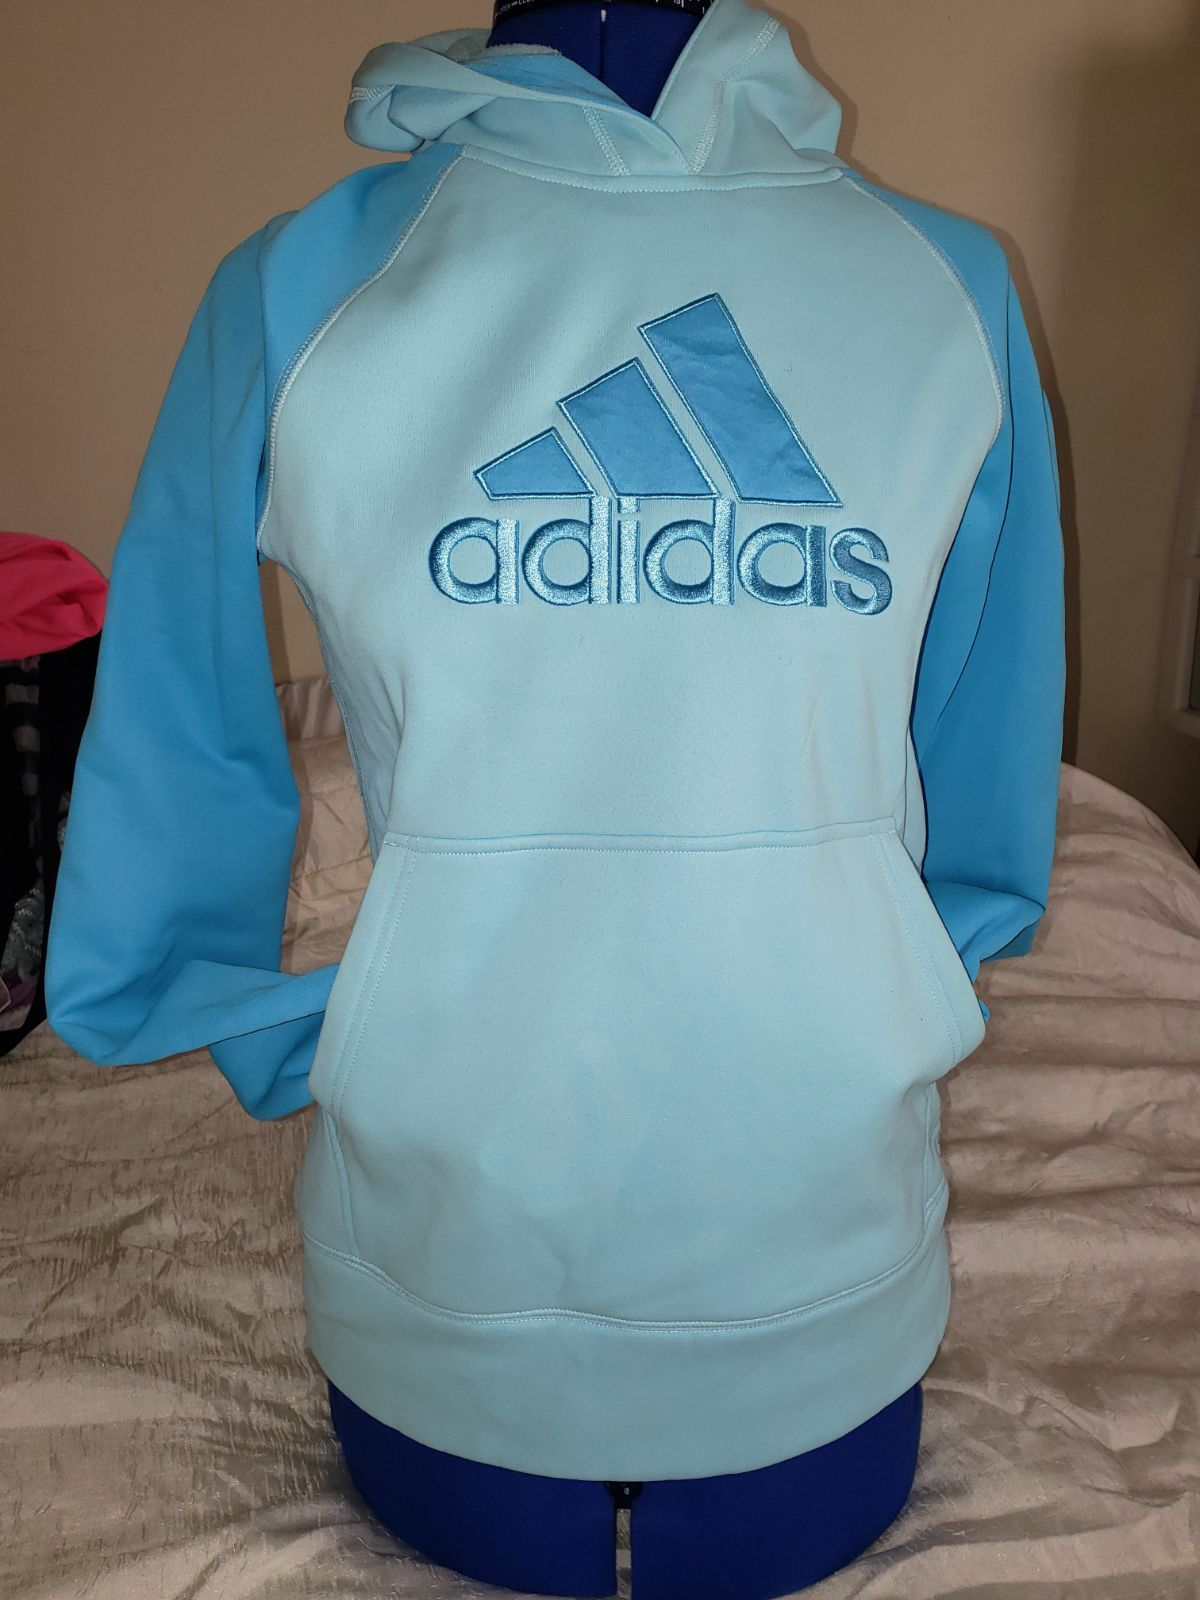 Adidas Girl S Sweater Turquoise With Light Blue With 100 Polyester Polyester Cap Size X L New Girls Sweaters Sweaters Adidas Sweater [ 1600 x 1200 Pixel ]